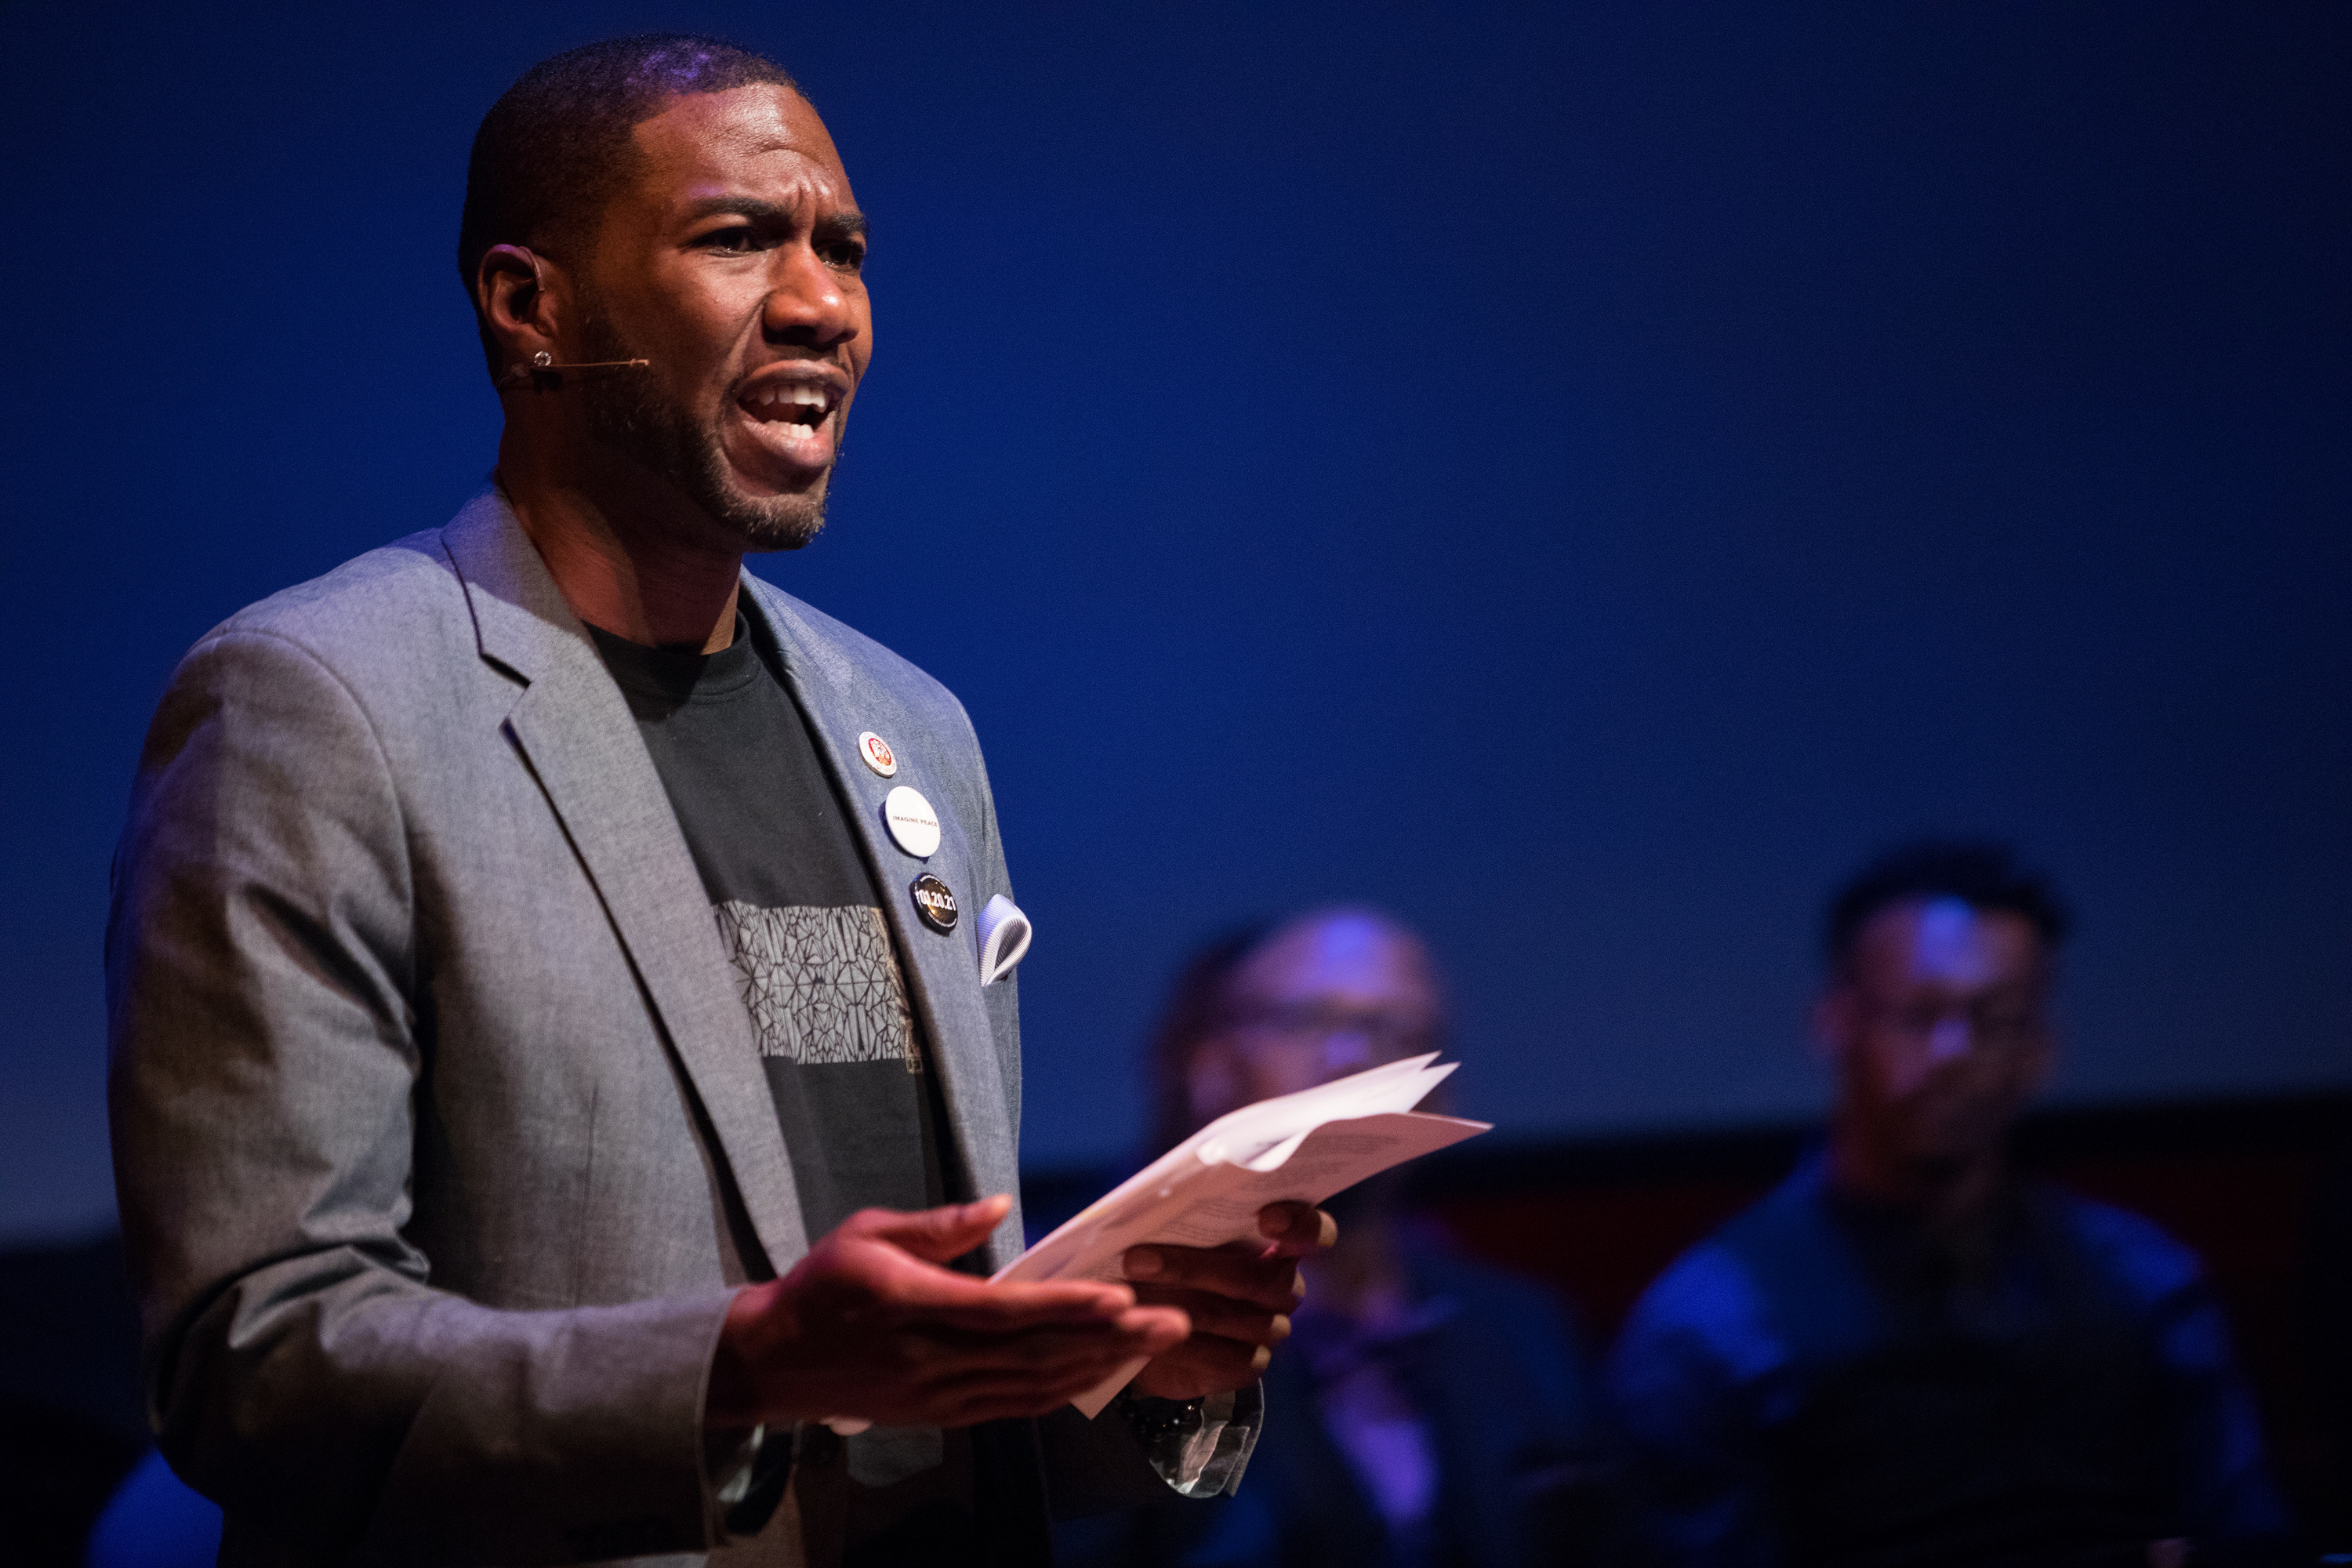 Jumaane Williams, New York City Council Member (Brooklyn 45th District) - The Drum Major Instinct